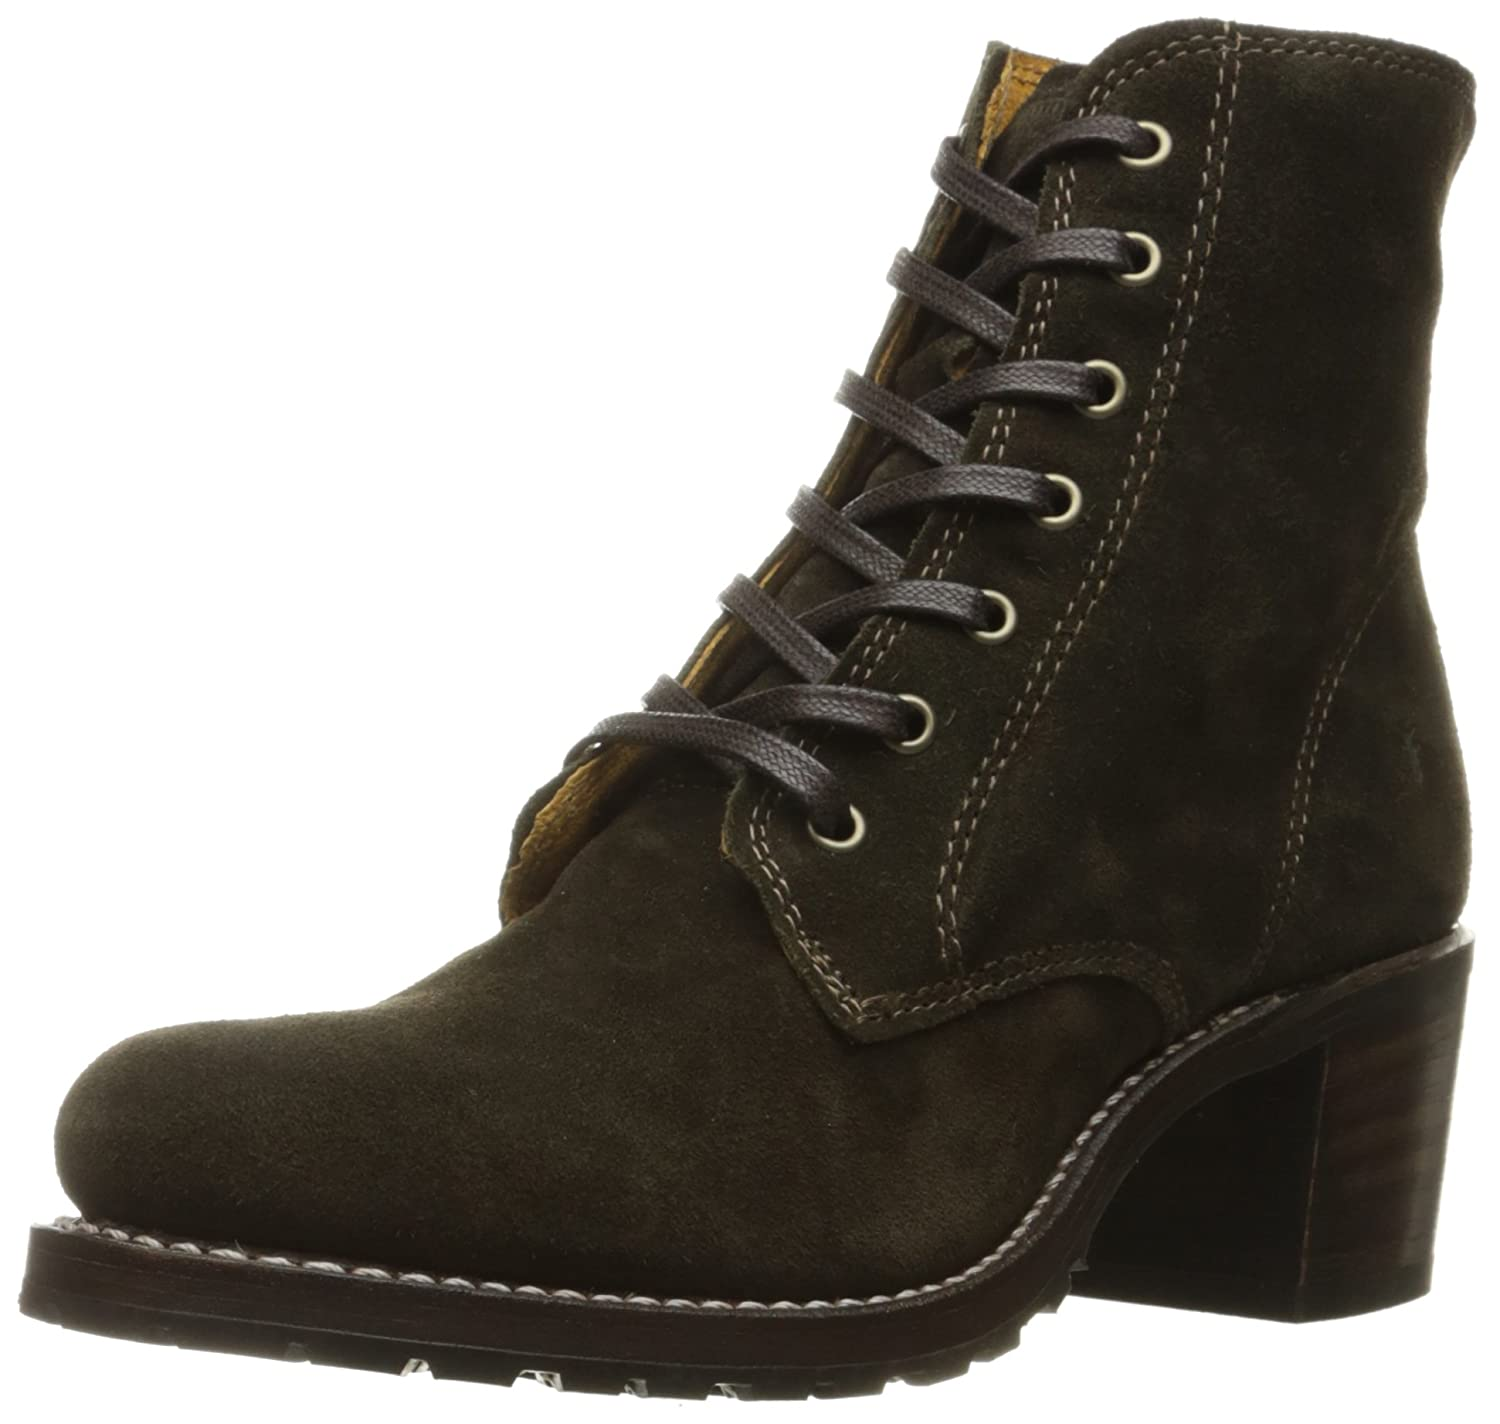 FRYE Women's Sabrina 6G Lace up Suede Boot B019448S42 6.5 B(M) US|Fatigue